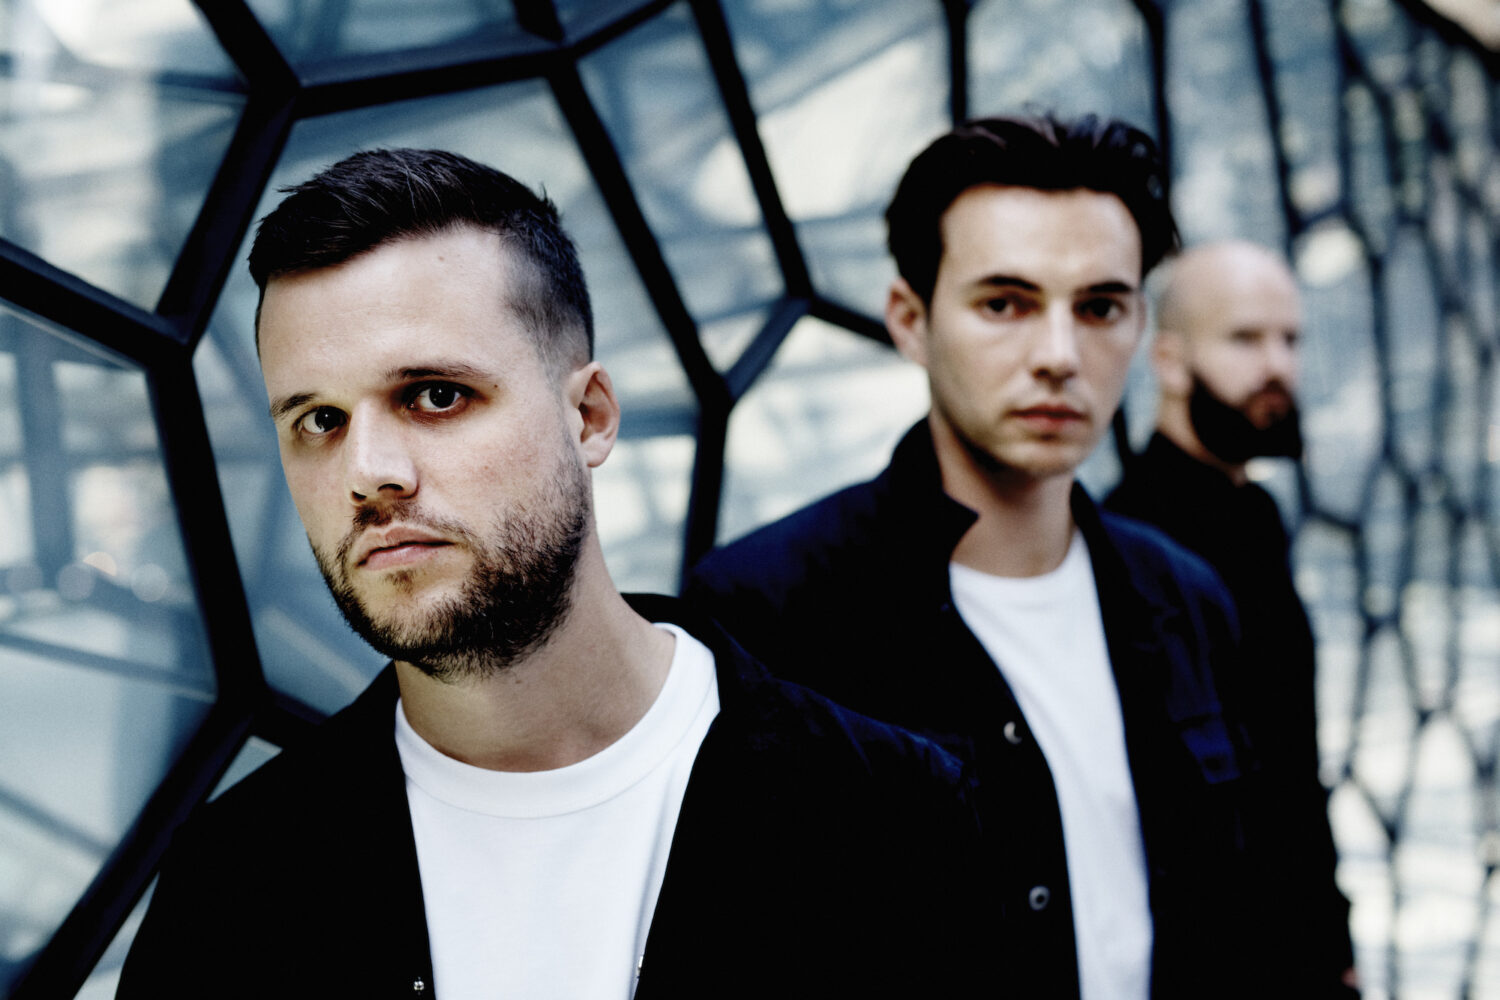 White Lies to headline Stand Up To Cancer at Union Chapel